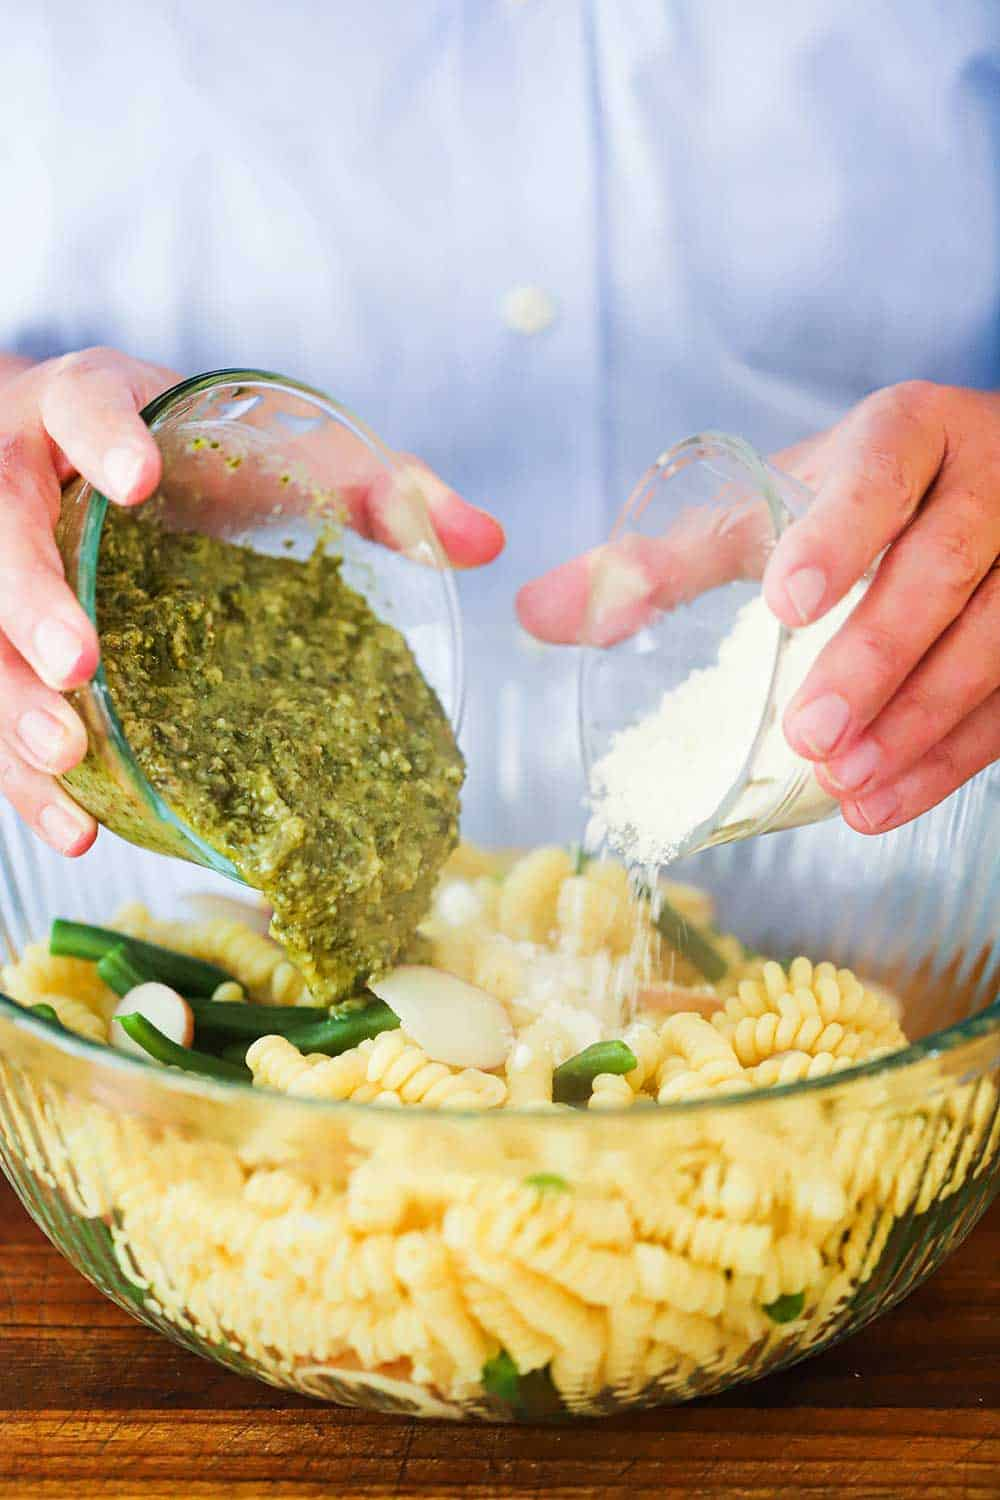 Two hands pouring a glass bowl of pesto sauce and another bowl of Parmesan cheese into a bowl of cooked fusili pasta.